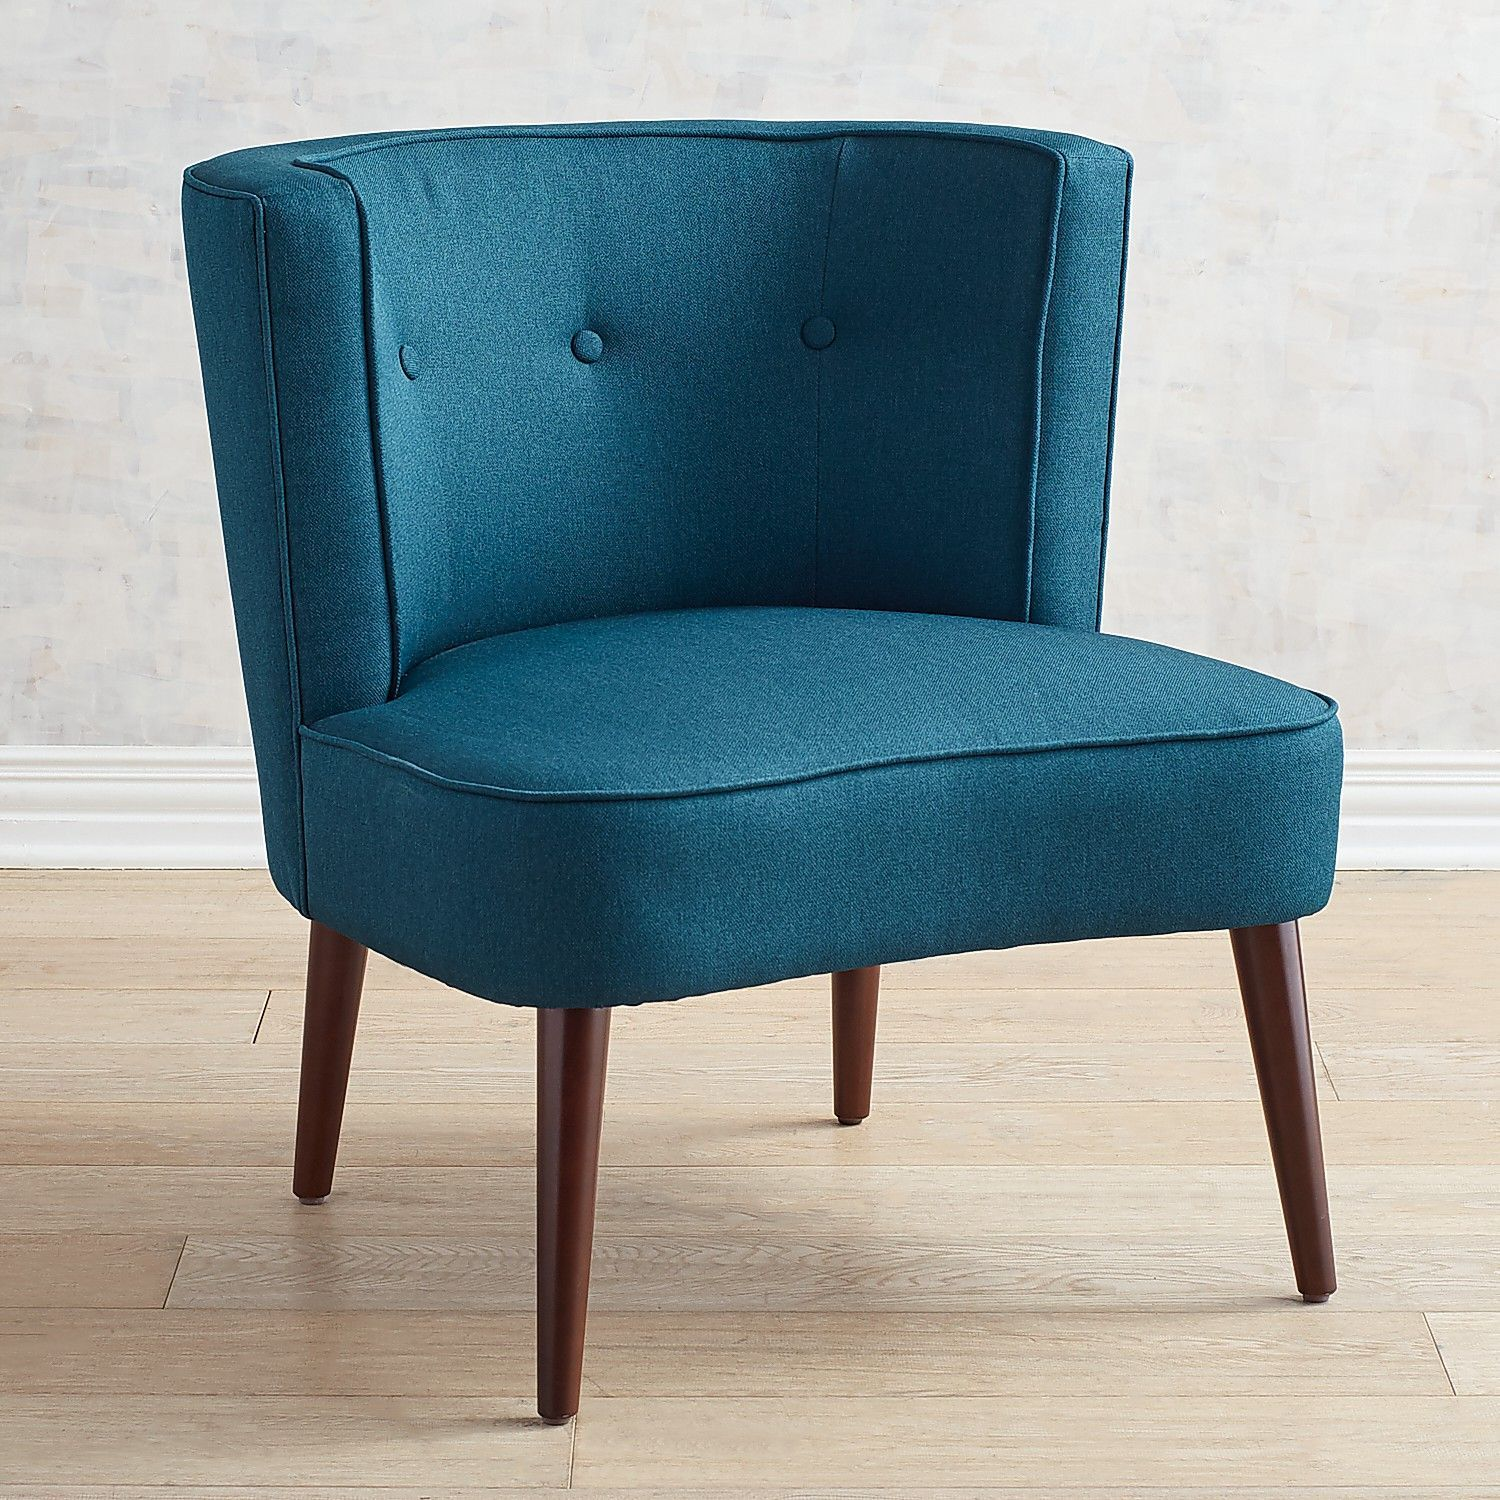 Peacock Evie Chair Upholstered chairs, Comfy chairs, Art